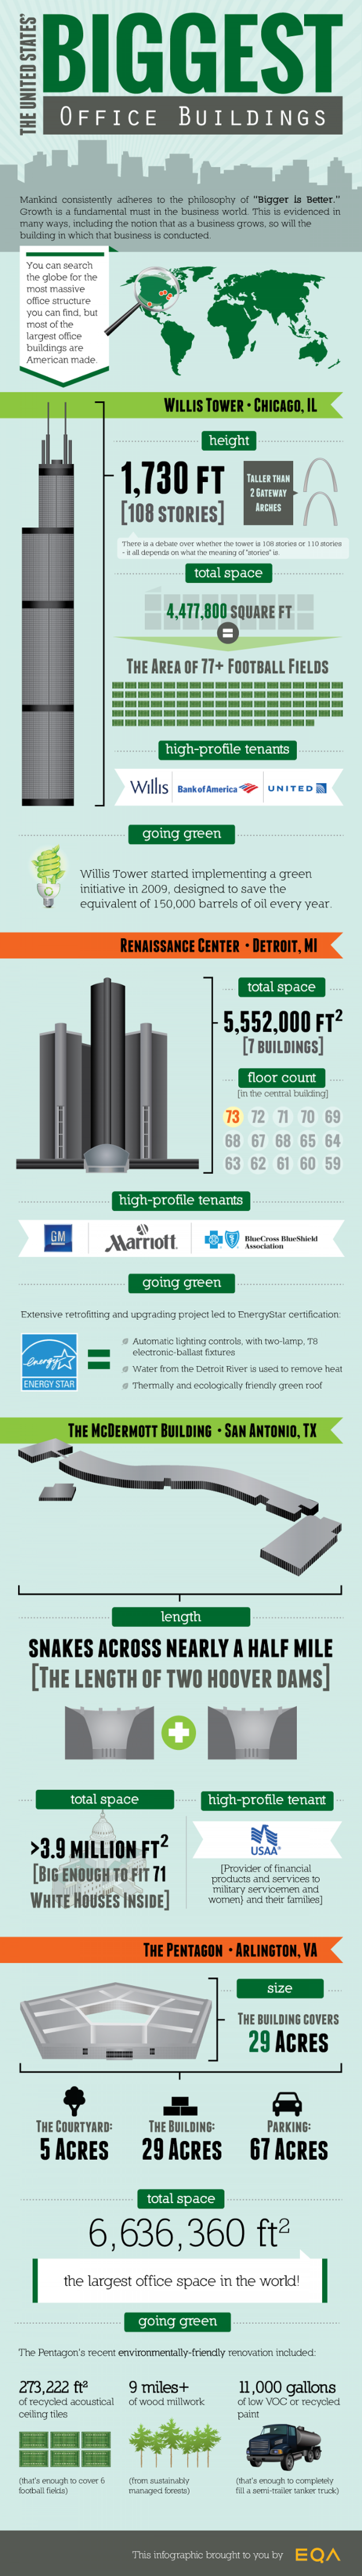 The Biggest Office Buildings in the United States Infographic